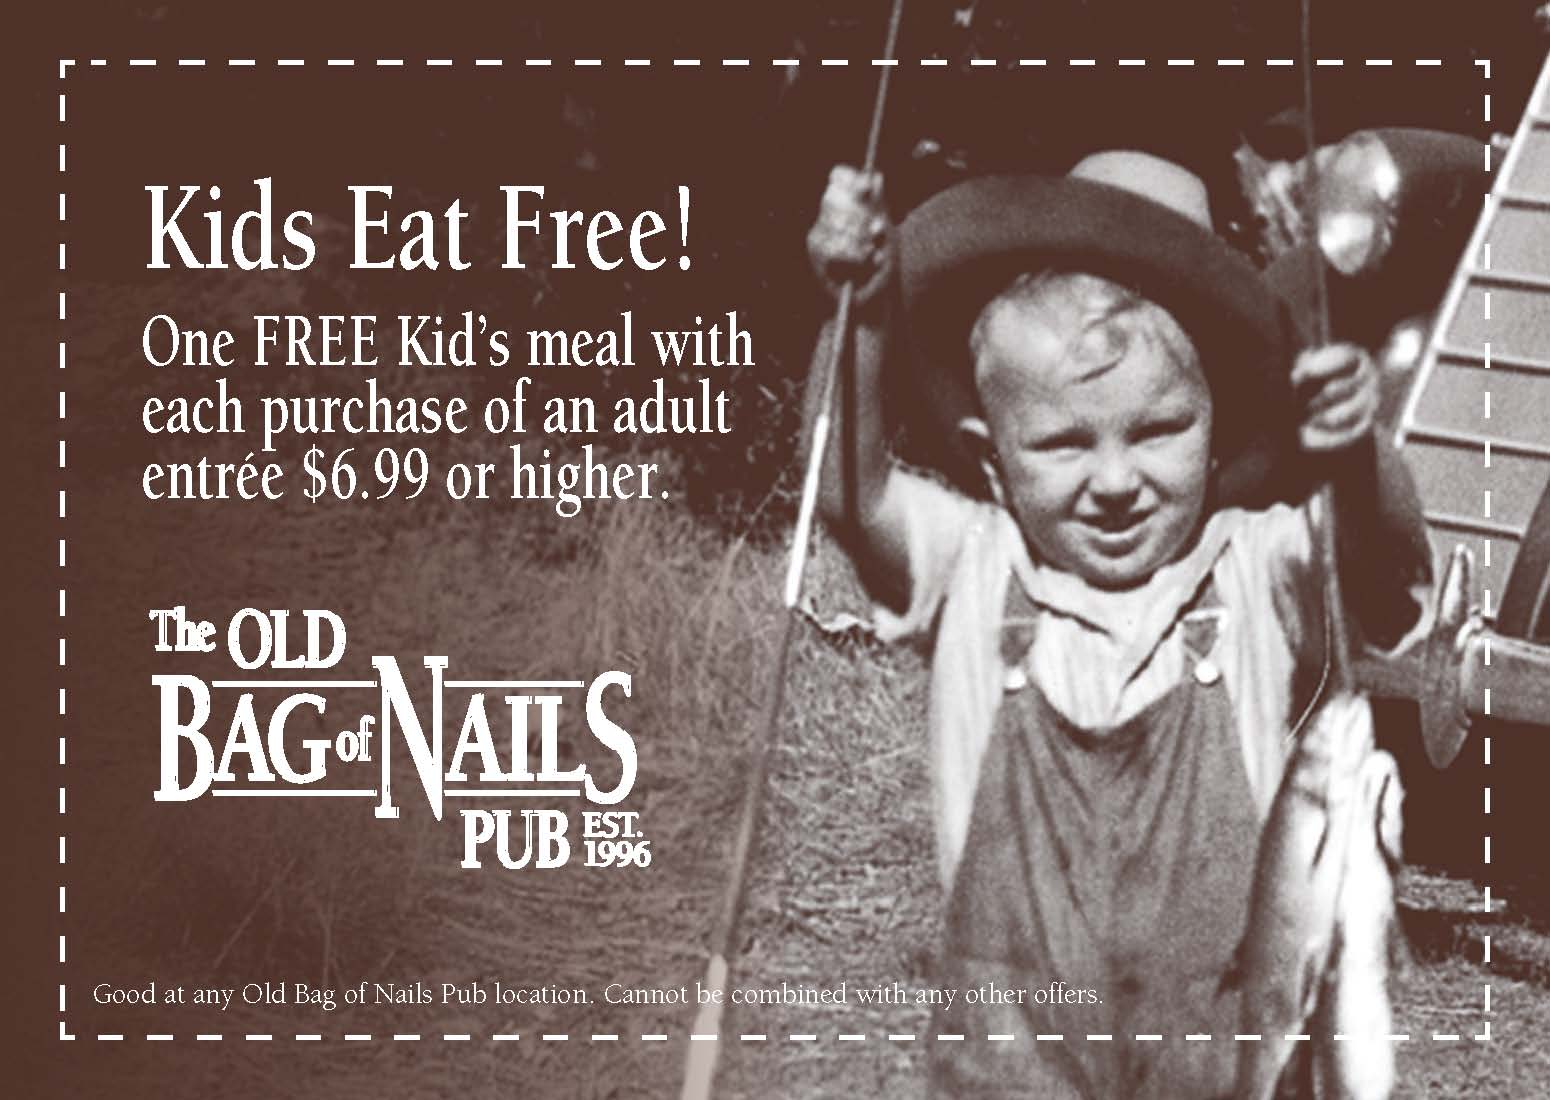 One FREE Kid's Meal with each purchase of an adult entree $6.99 or higher. Cannot be combined with any other offer.